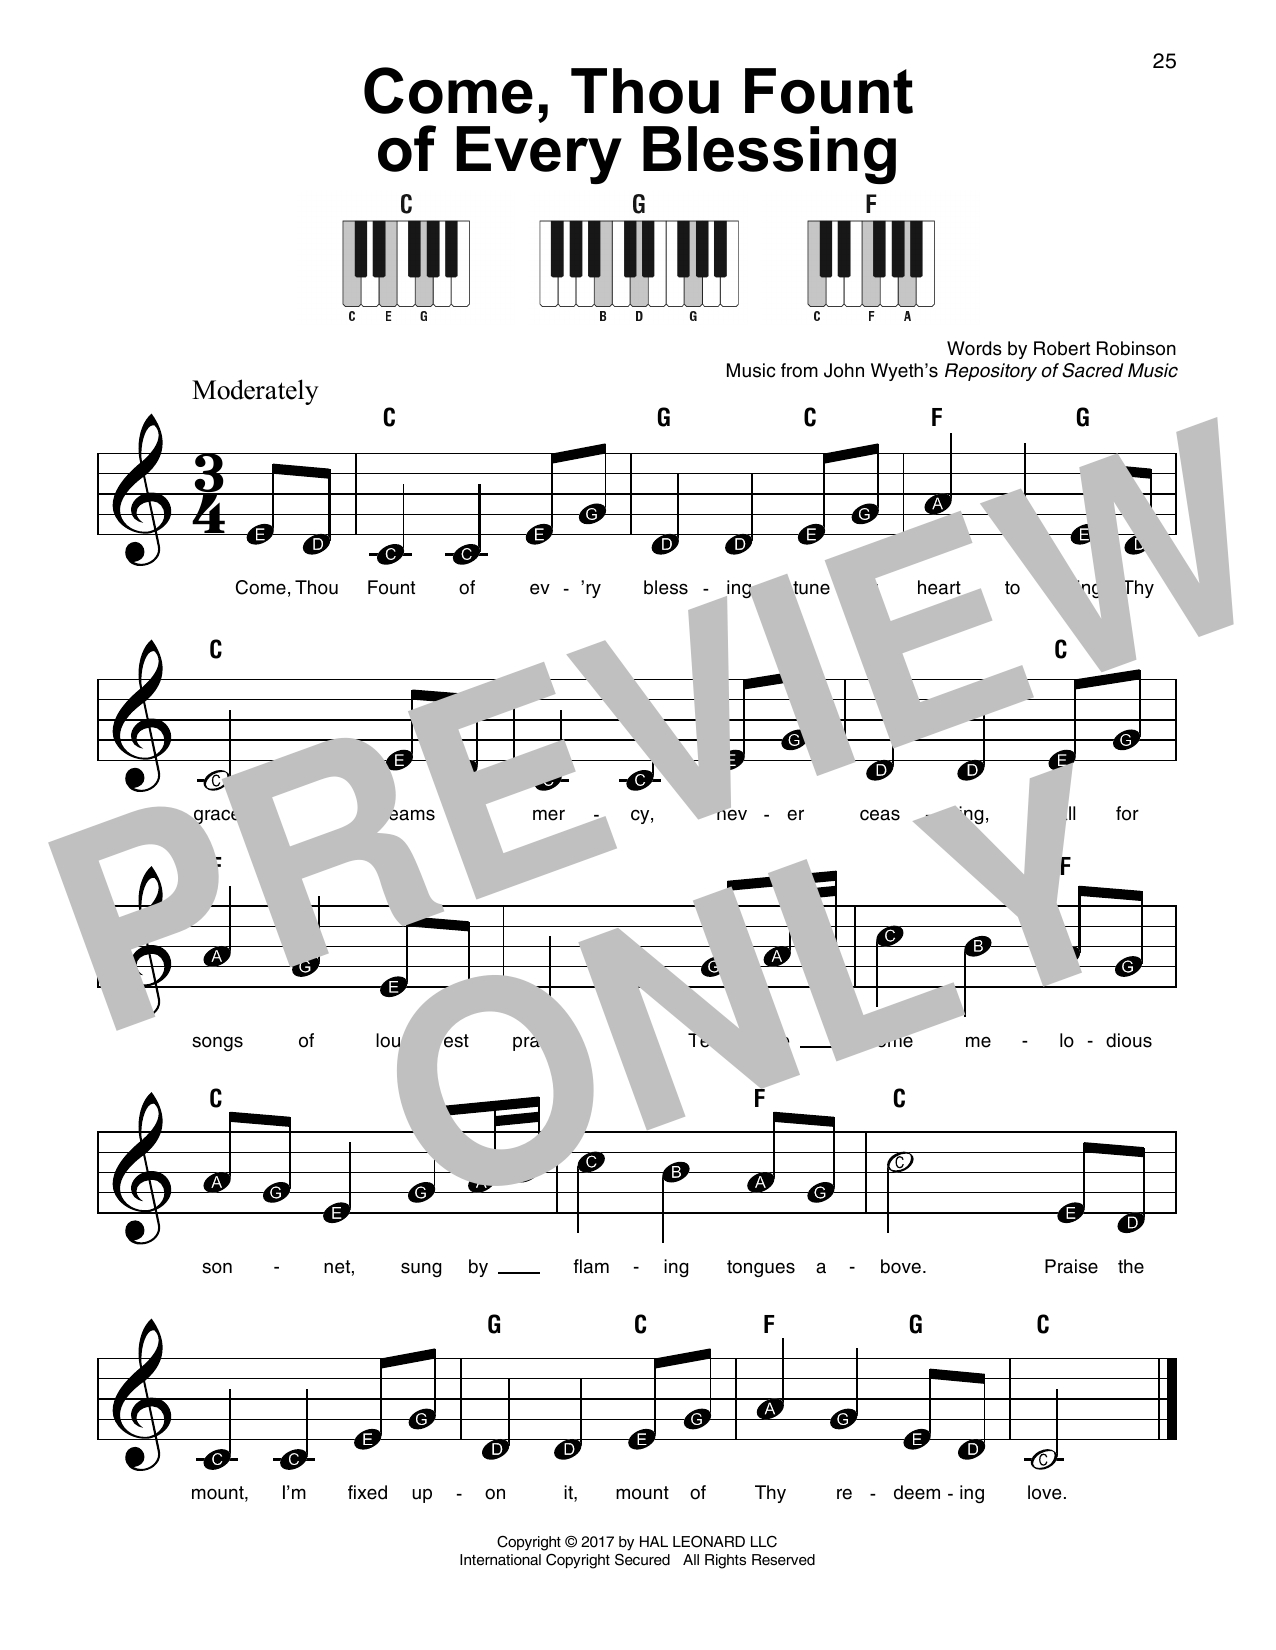 Come Thou Fount Chords John Wyeth Come Thou Fount Of Every Blessing Sheet Music Notes Chords Download Printable Easy Piano Sku 254342